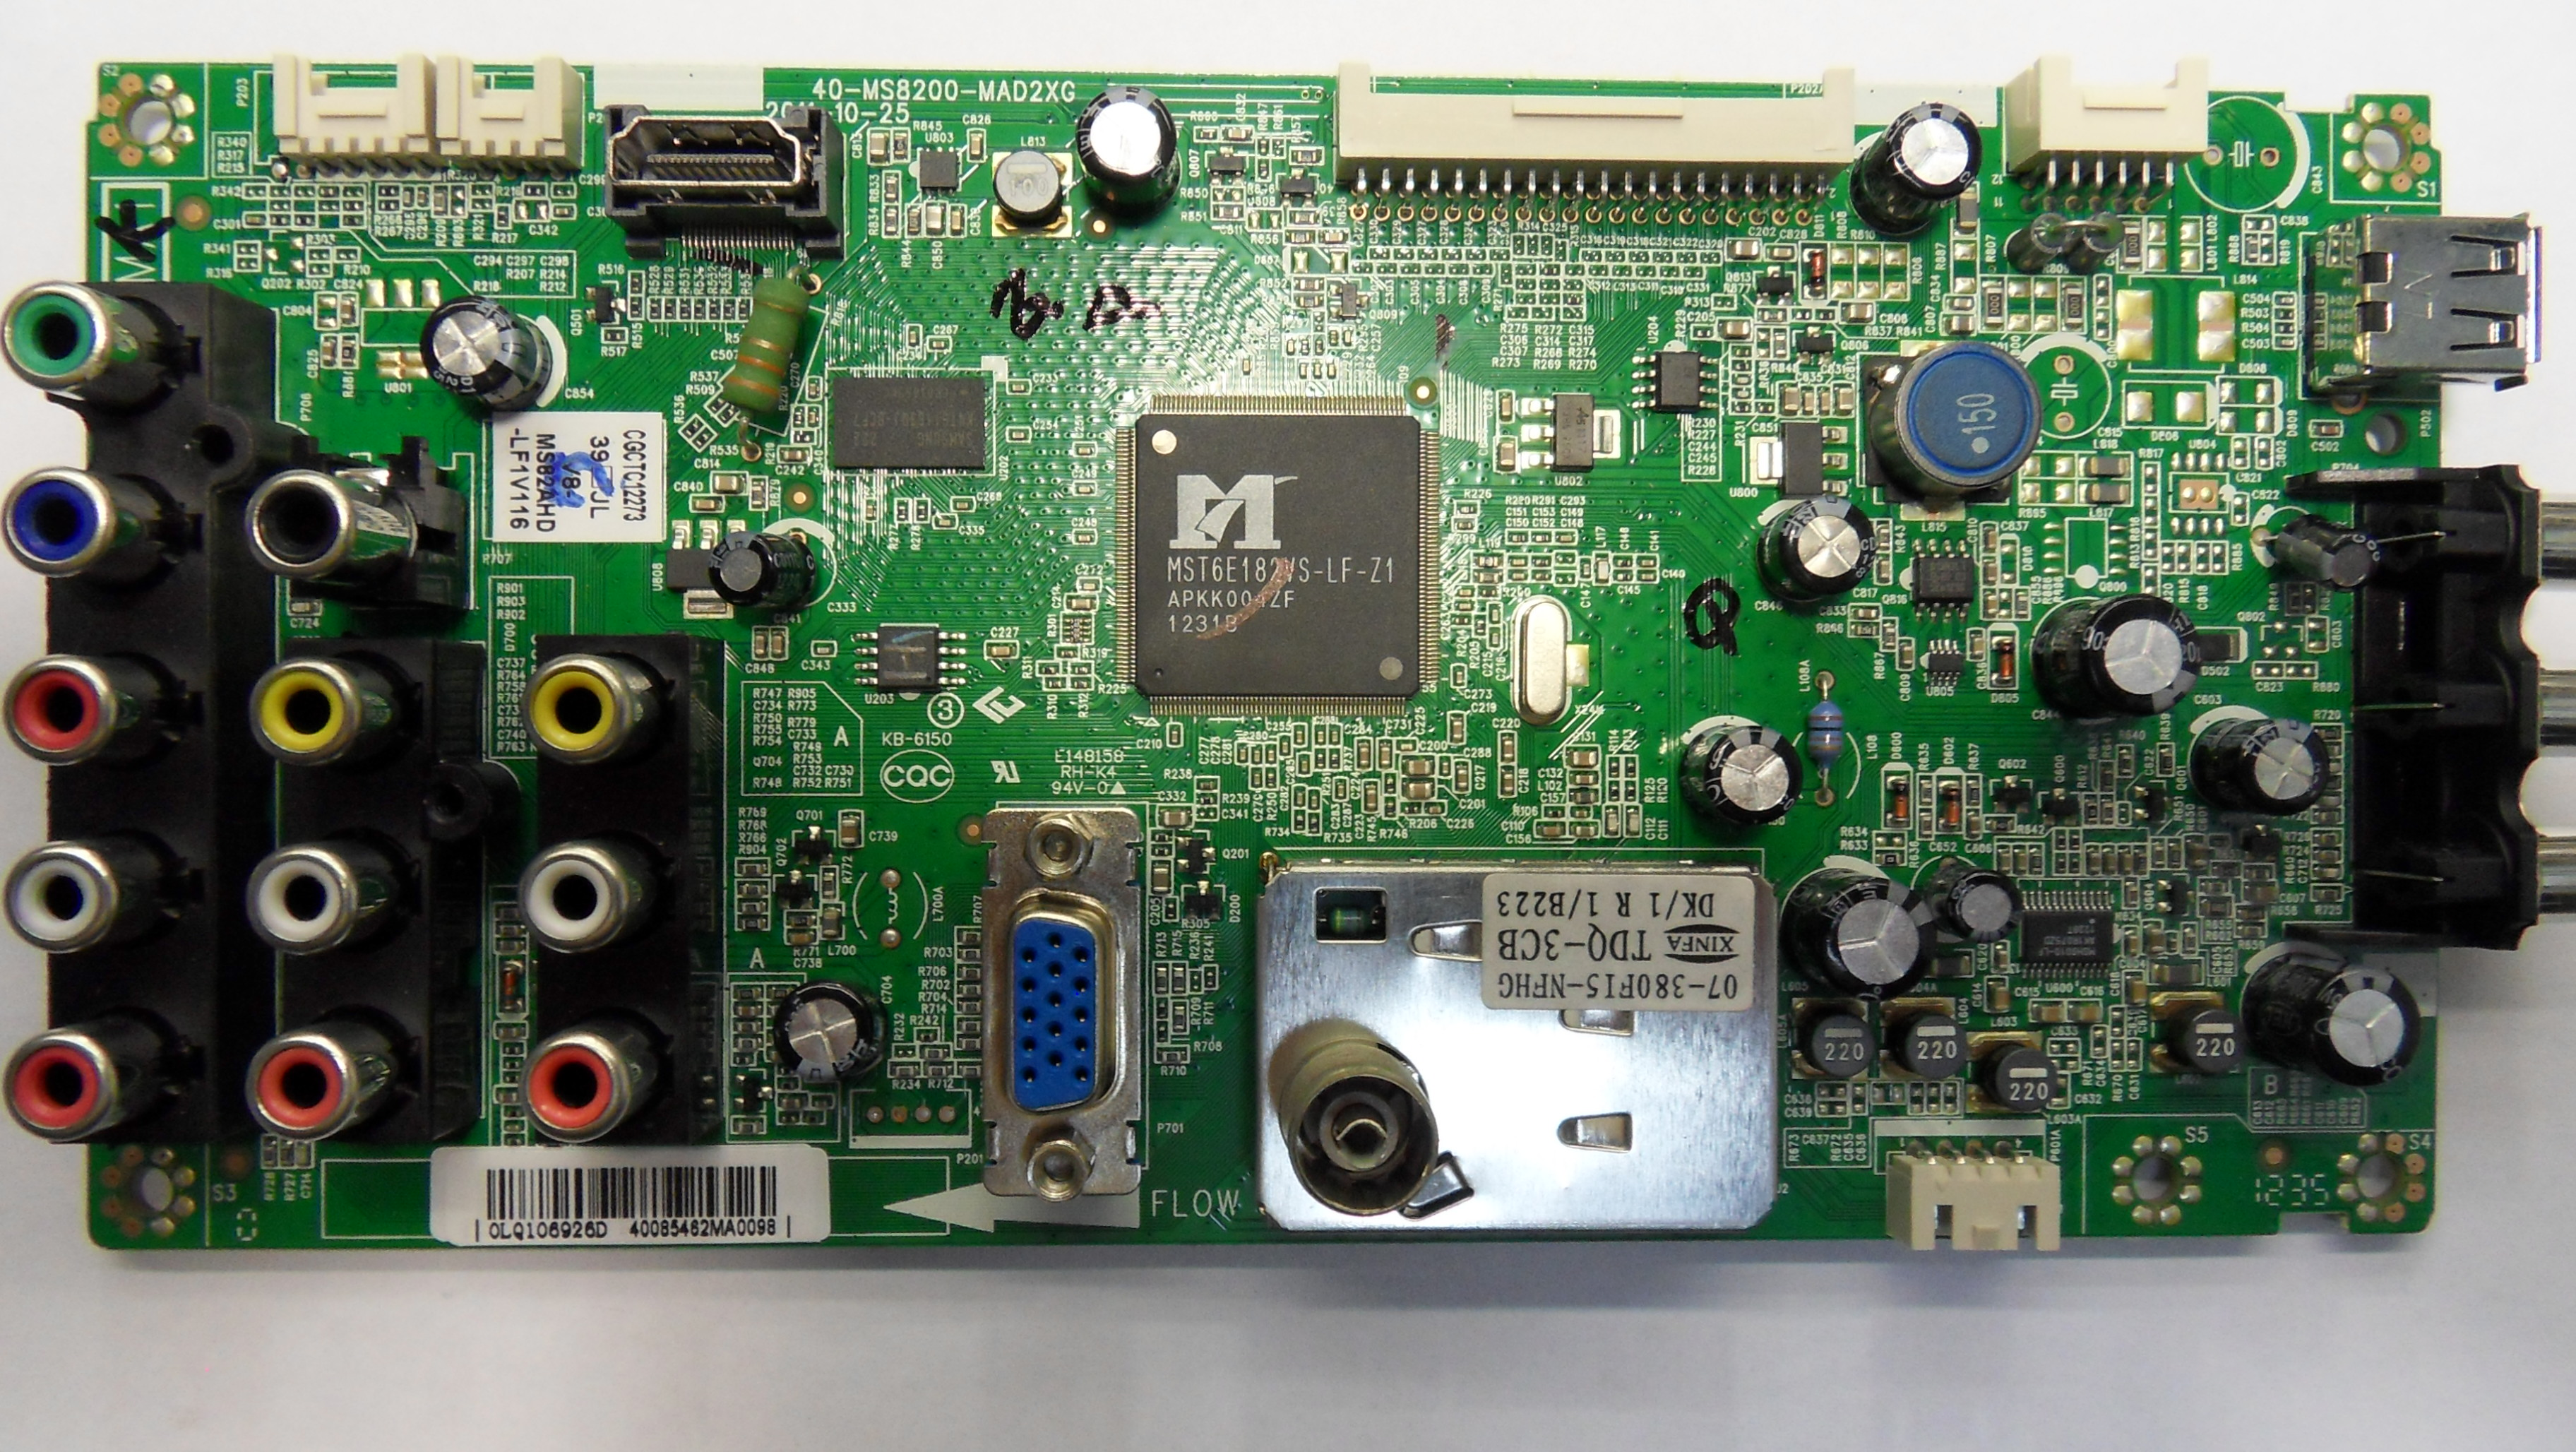 40-MS8200-MAD2XG